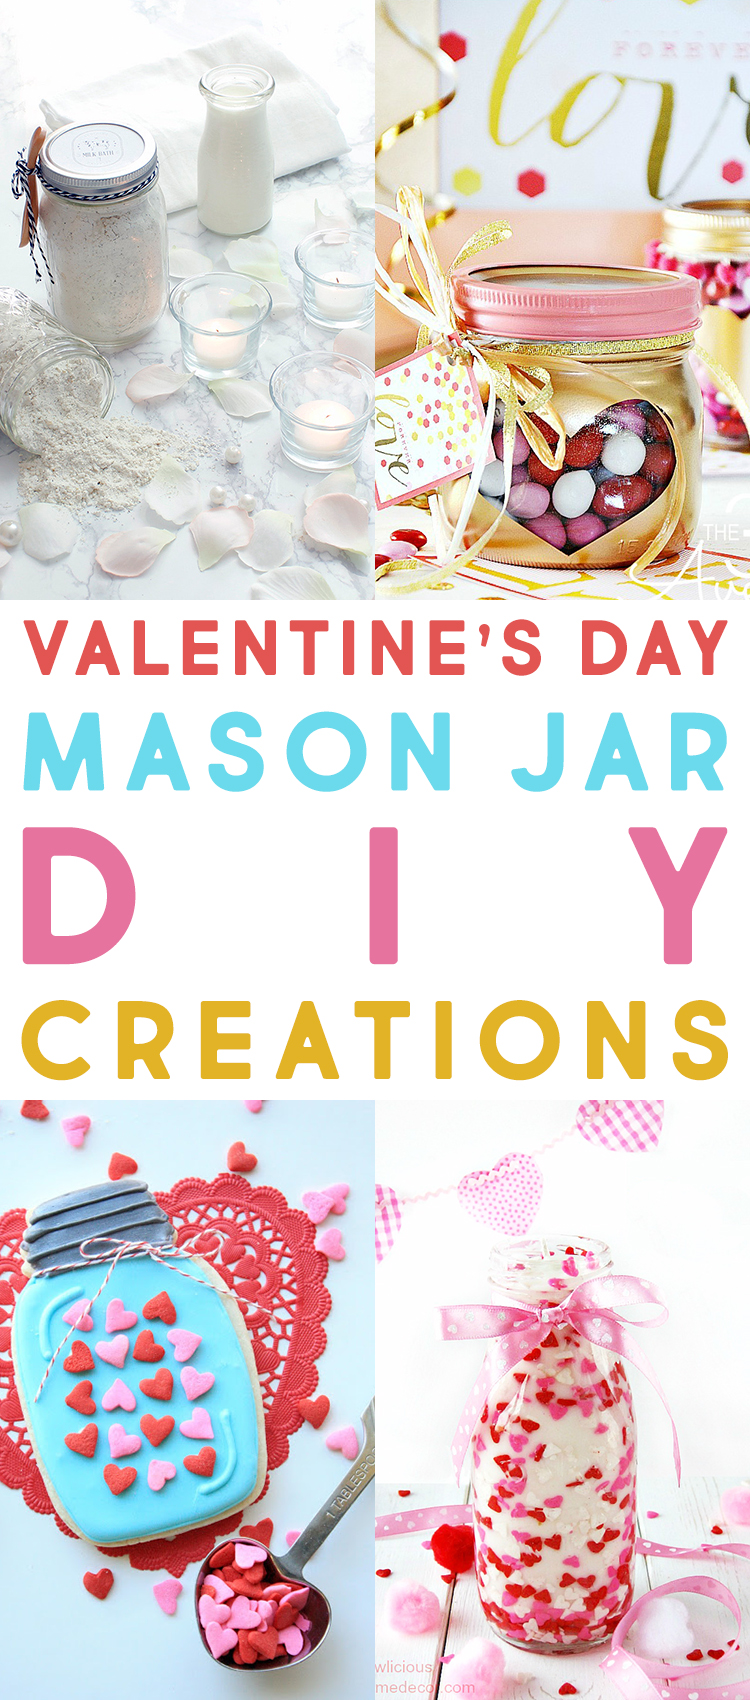 Valentine's Day Mason Jar DIY Creations